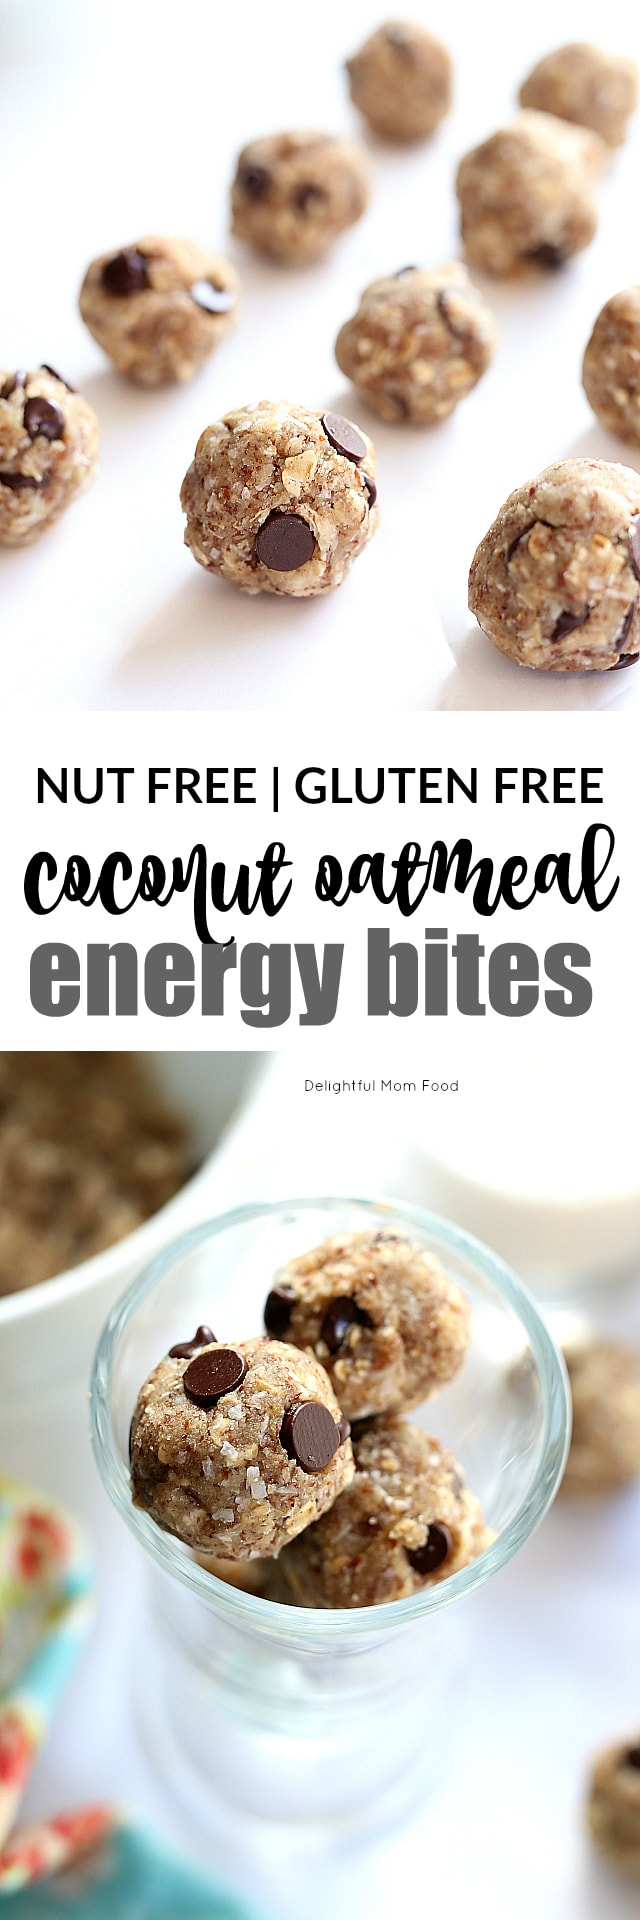 No baking required for these chocolate chip cookie dough balls! Simply melt, mix, chill and roll the little energy bites into the most flavorful guilt-free treats! Made with natural whole grain ingredients!